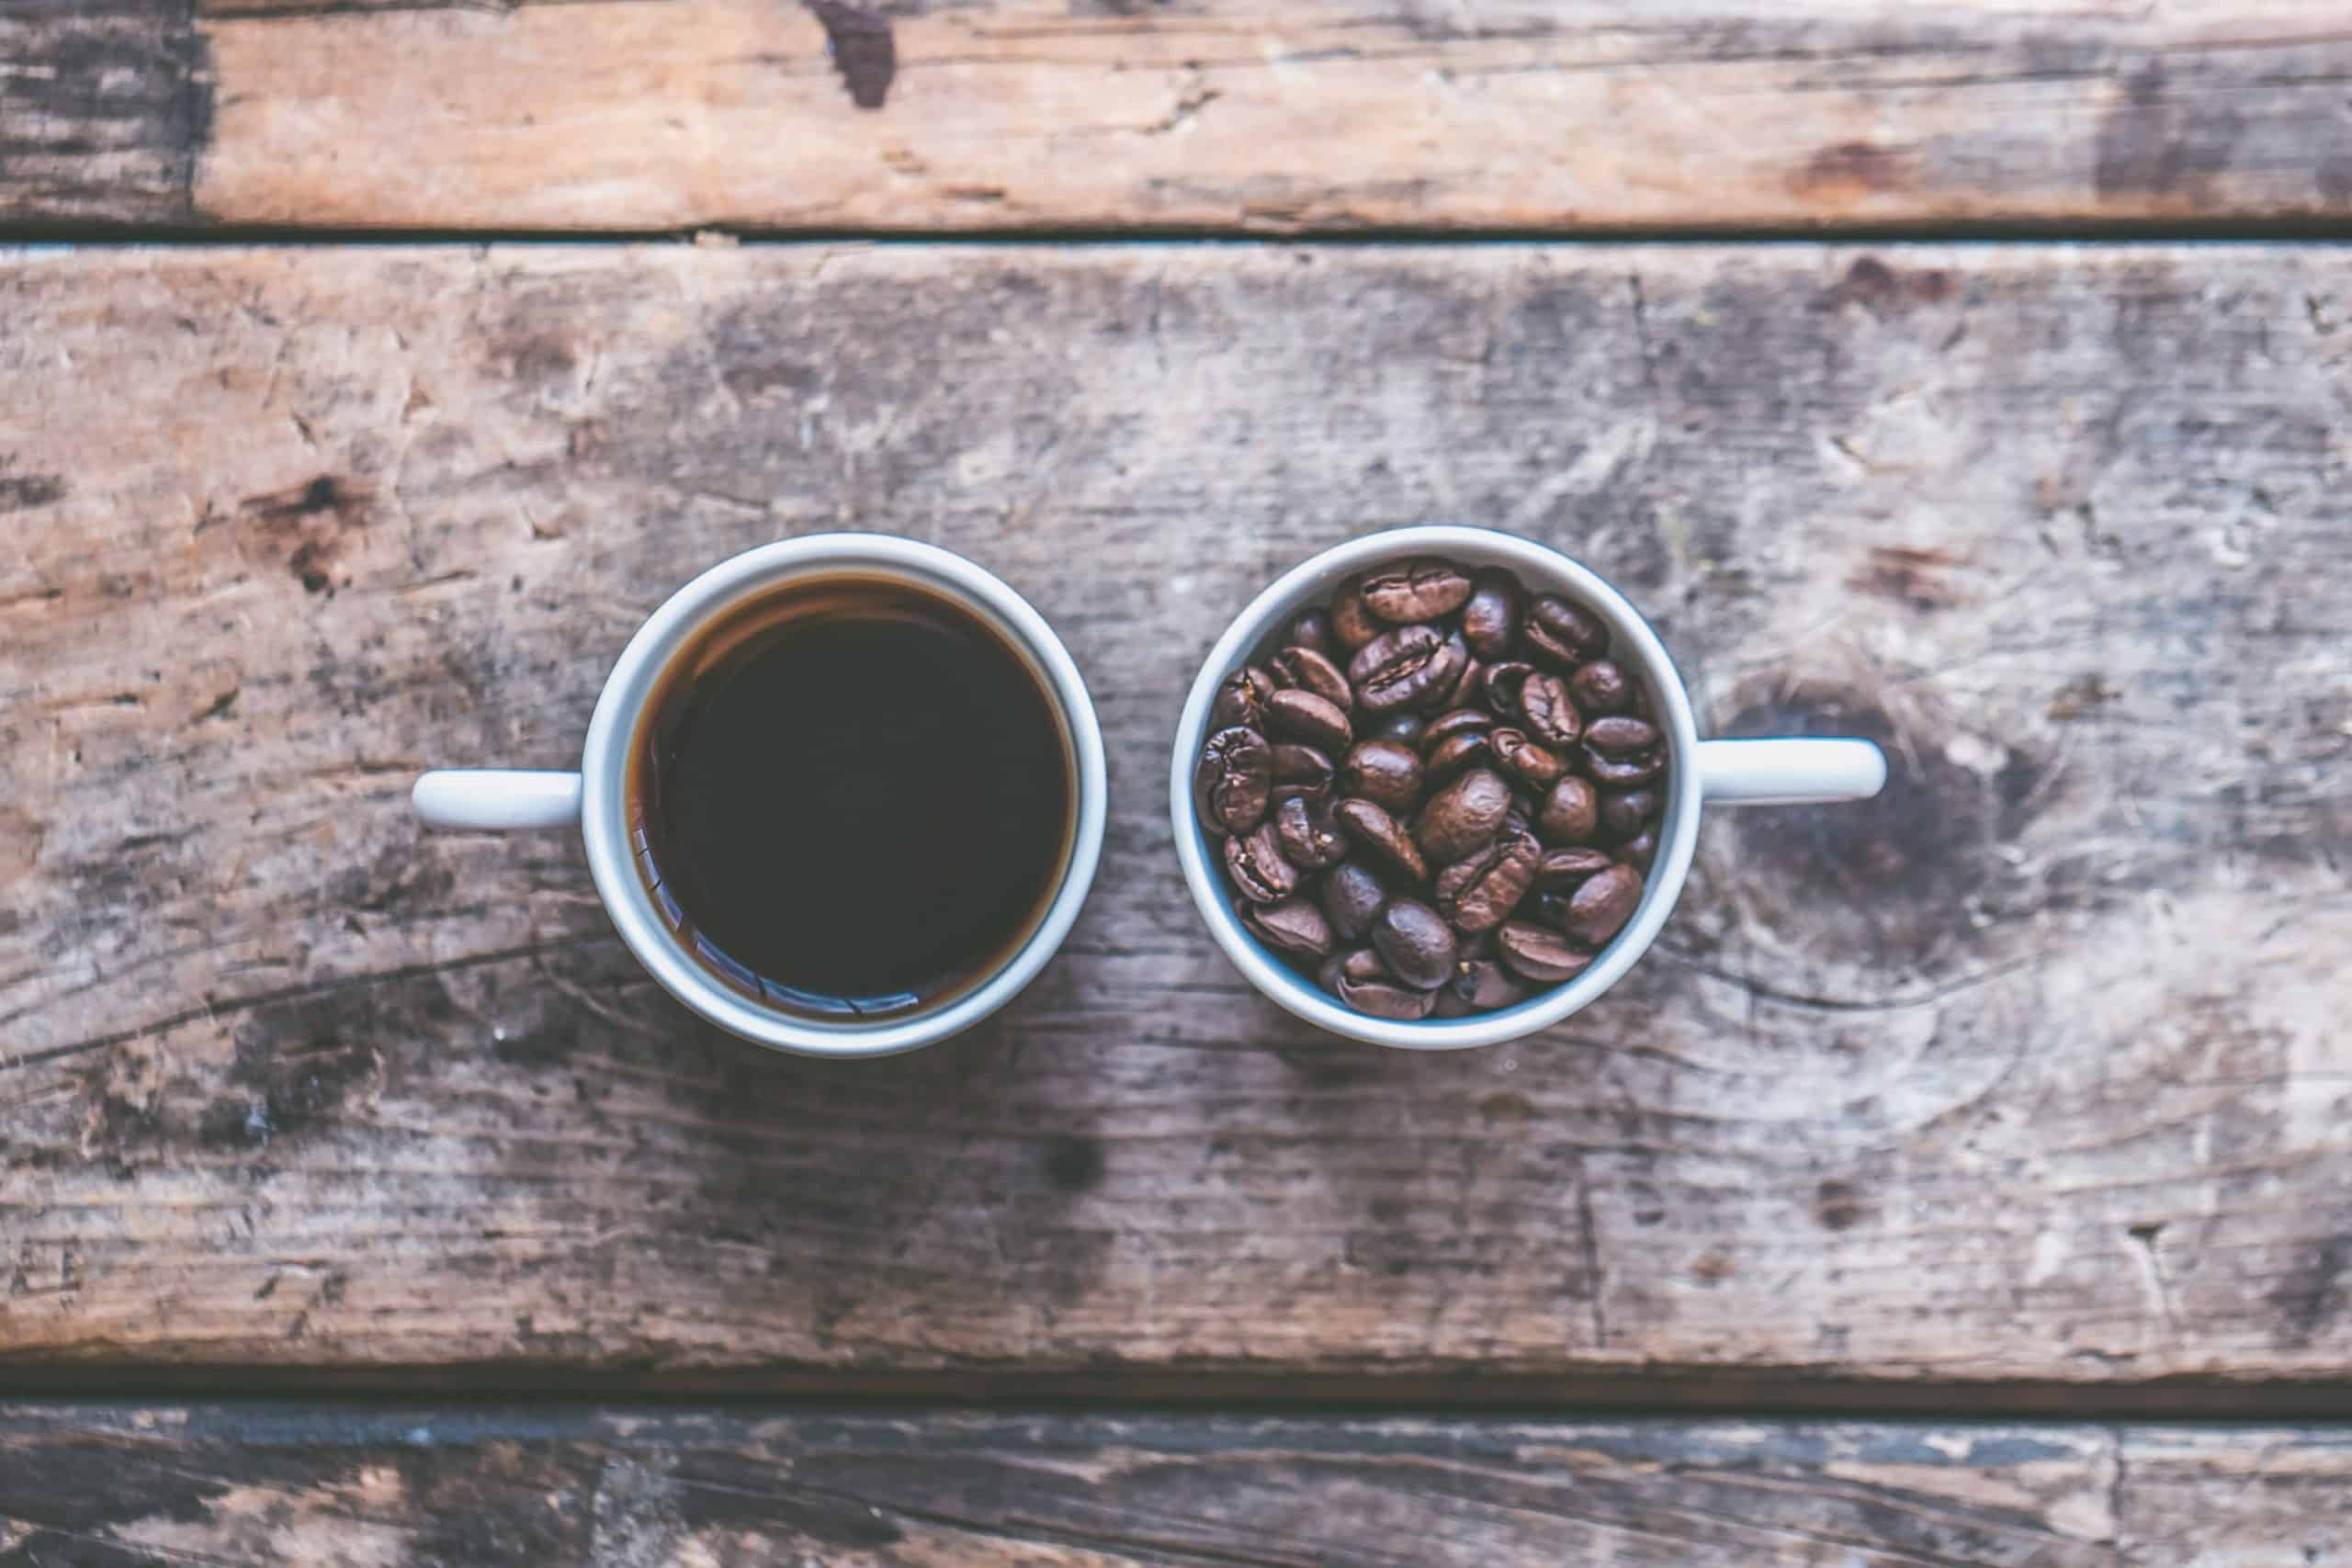 is-caffeine-bad-for-you-(and-how-much-caffeine-is-too-much)?